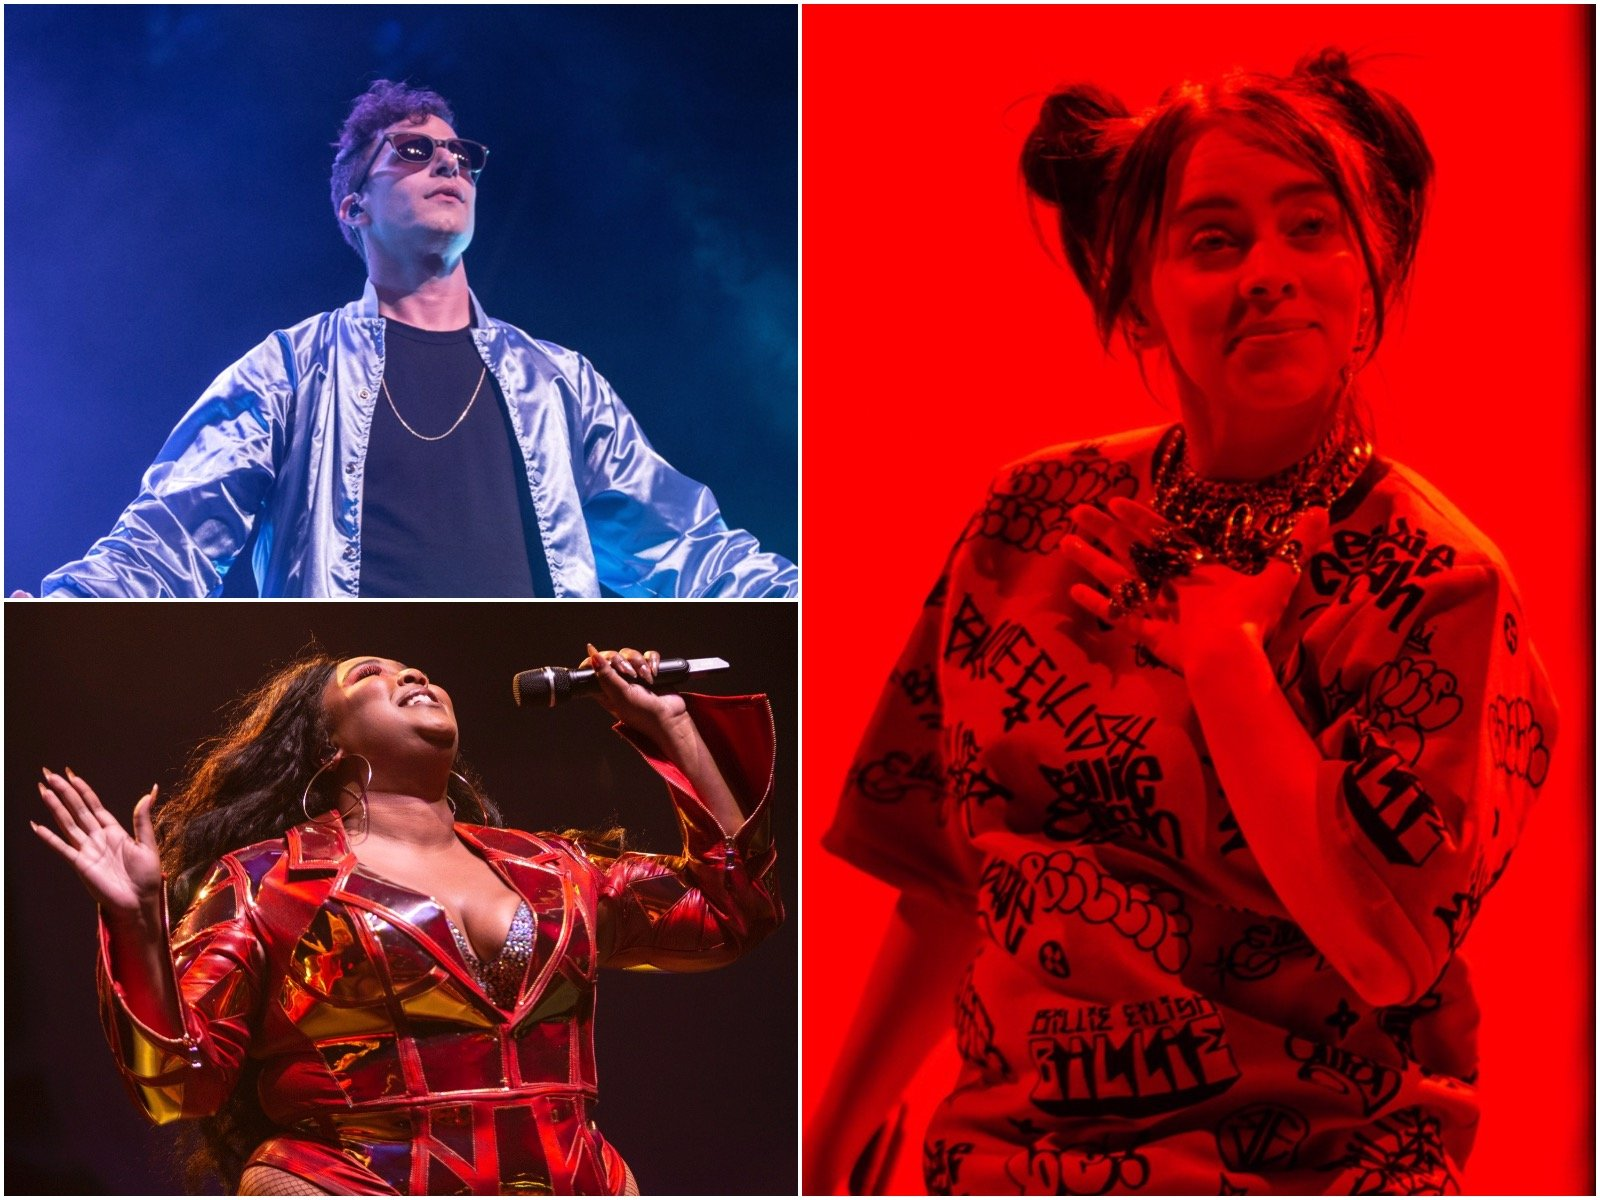 Recapping the Big Gig: The best and worst of Summerfest 2019